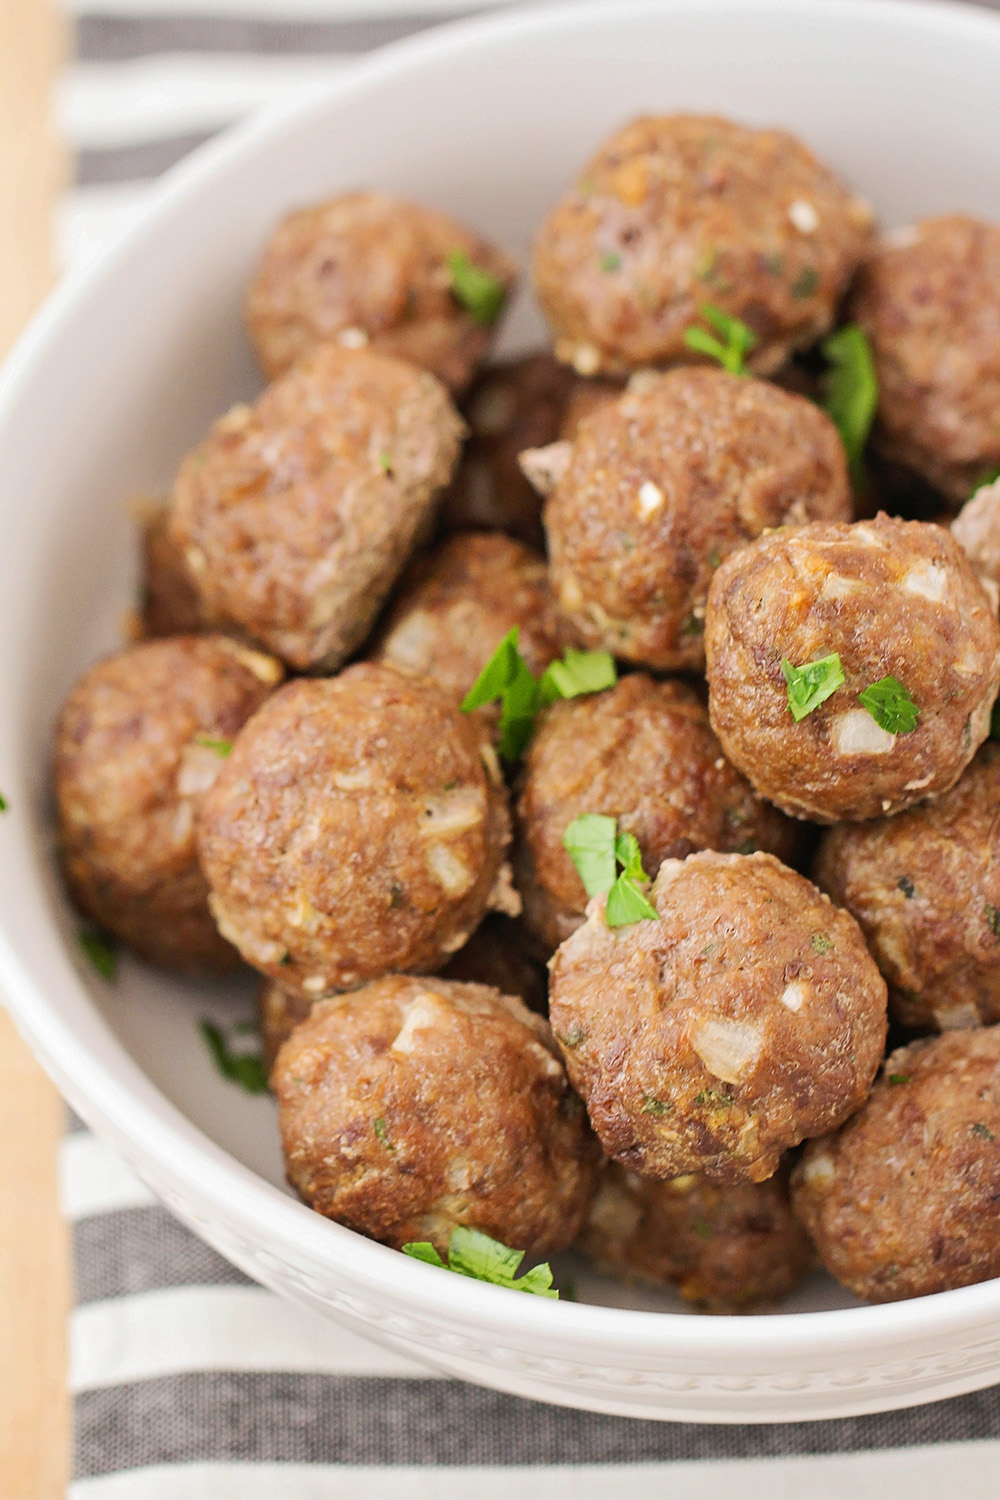 These freezer-friendly baked meatballs are totally delicious and perfect for swedish meatballs, spaghetti, and more!